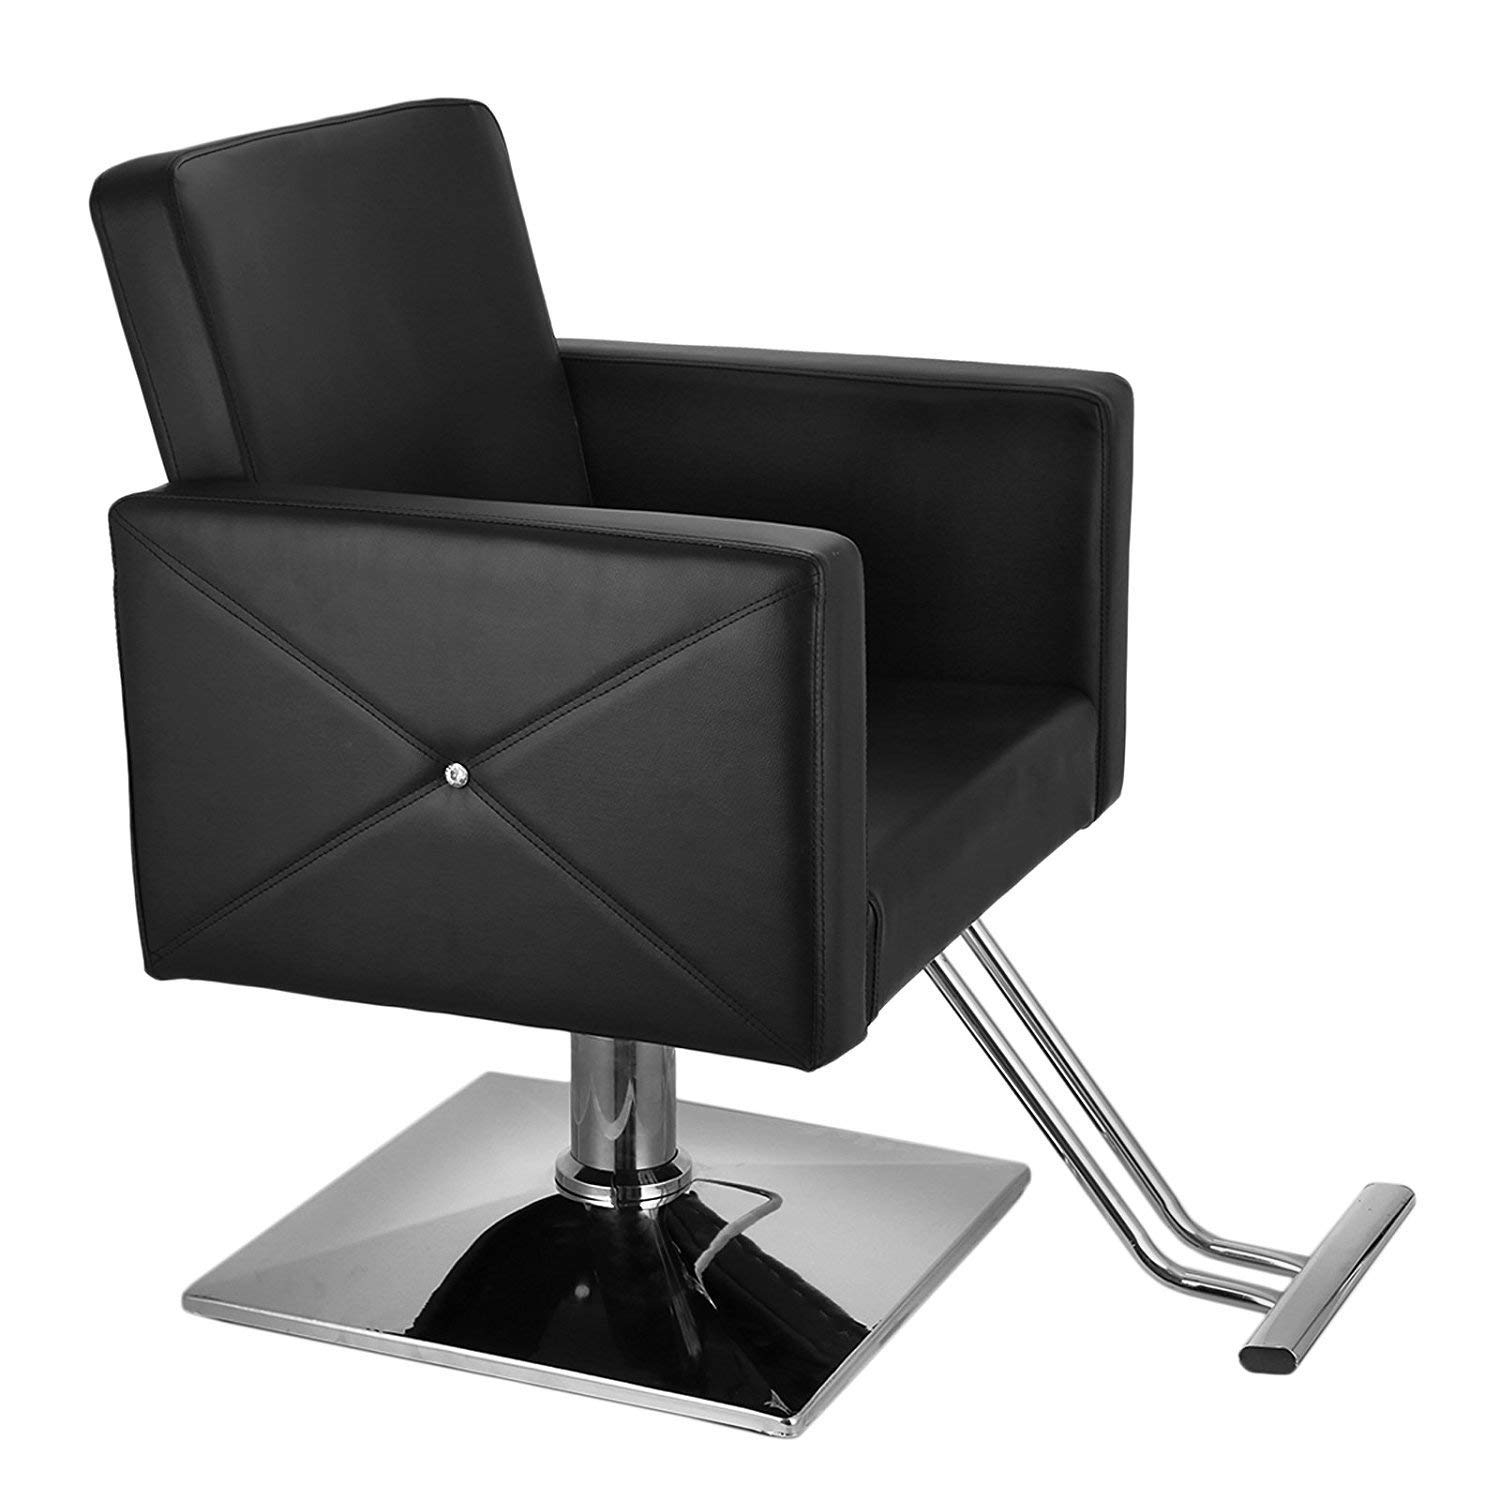 BuoQua Hydraulic Barber Chair PU Leather Barber Salon Chair Hydraulic Lift Square Base Hairdressing Styling Chair SPA Salon Beauty Equipment Barber Chair (Black)